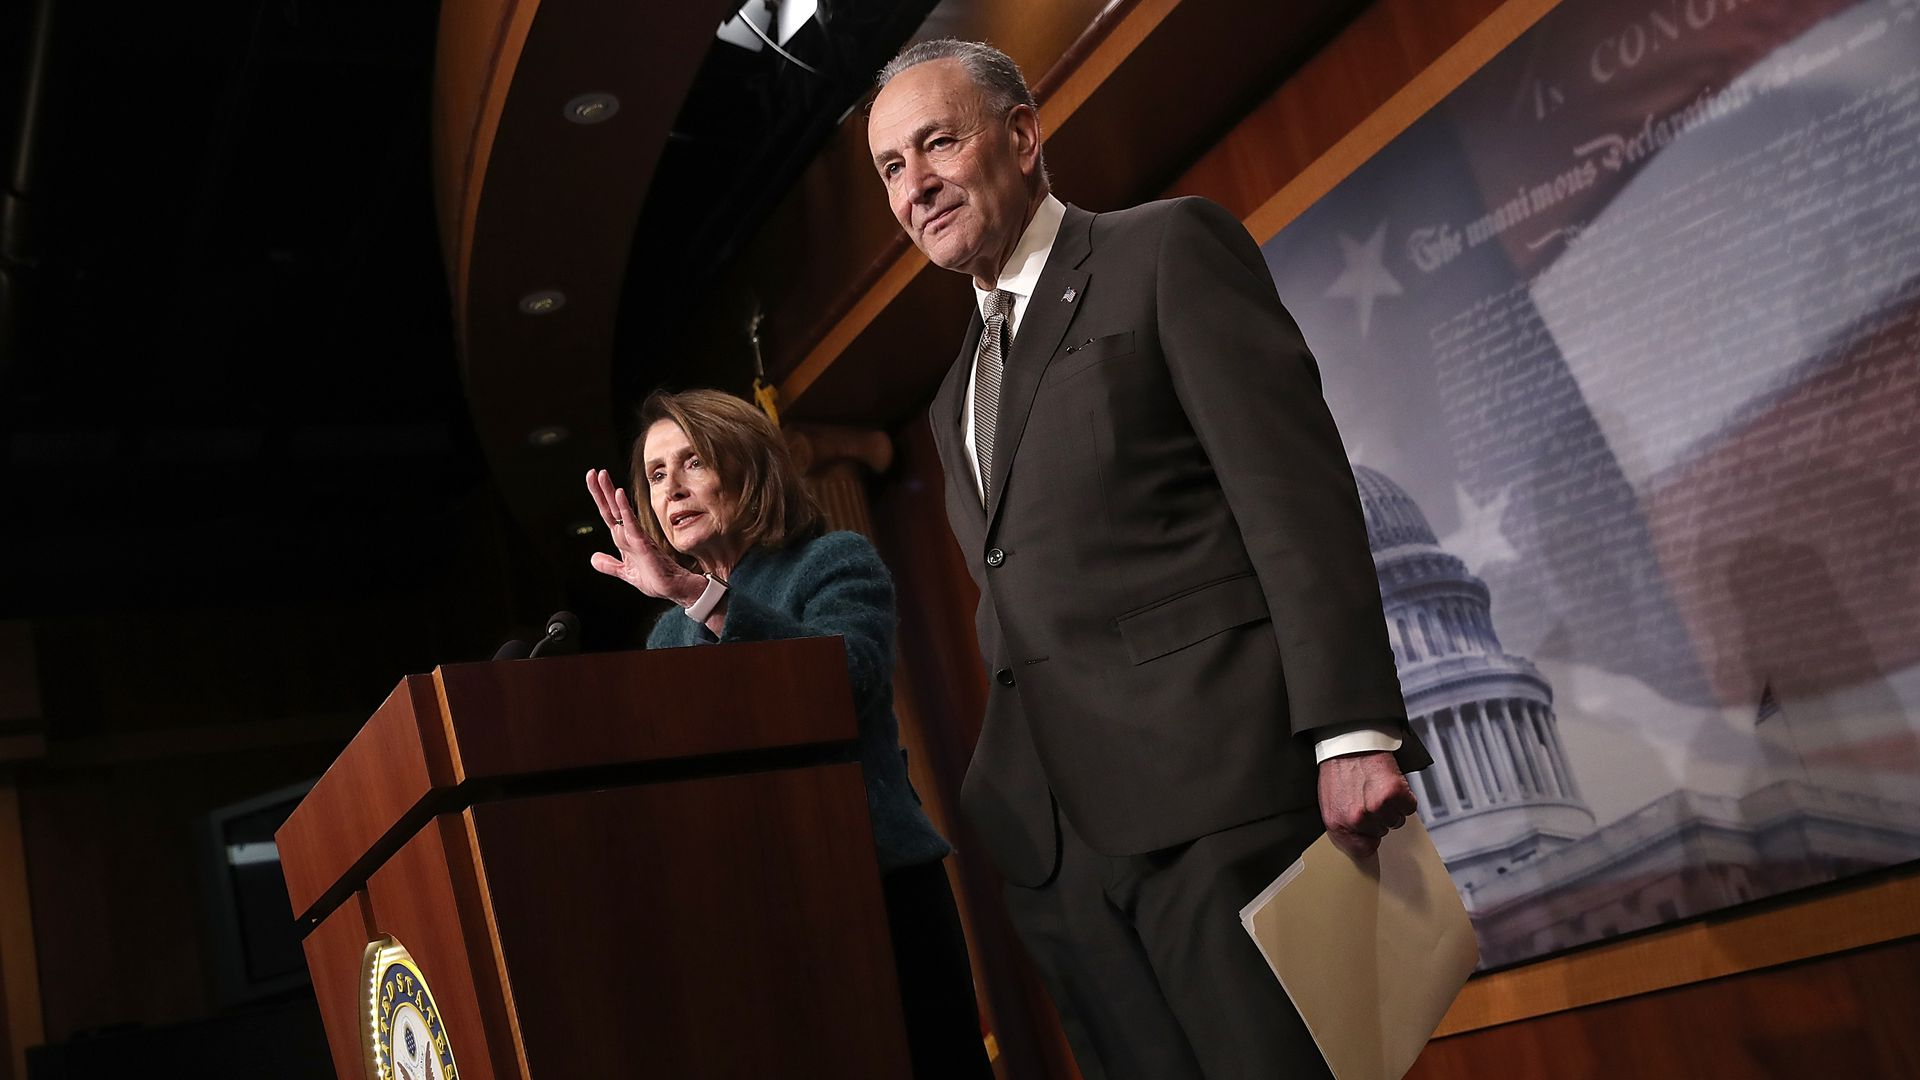 Senate Minority Leader Chuck Schumer (D-NY) and House Minority Leader Nancy Pelosi (D-CA)